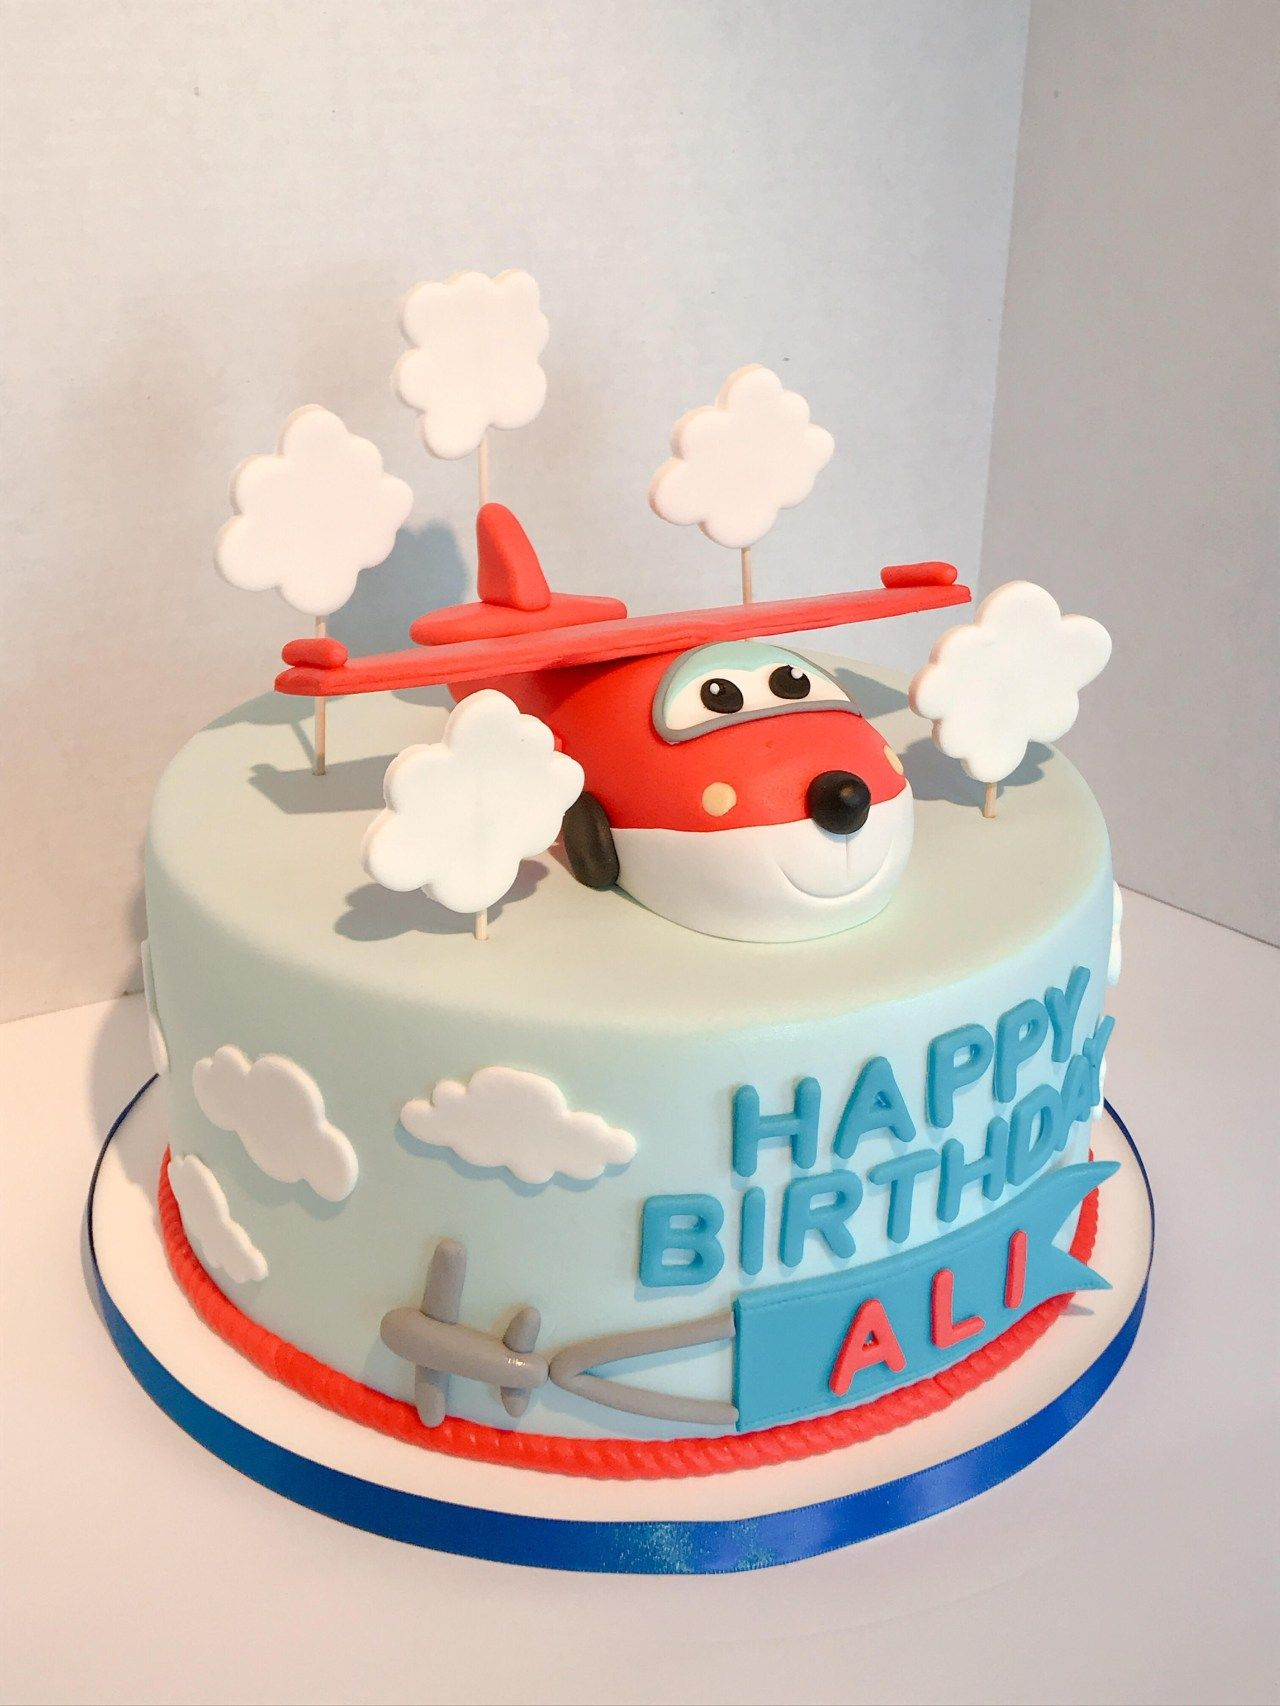 Swell 30 Inspired Photo Of Airplane Birthday Cake With Images Birthday Cards Printable Trancafe Filternl